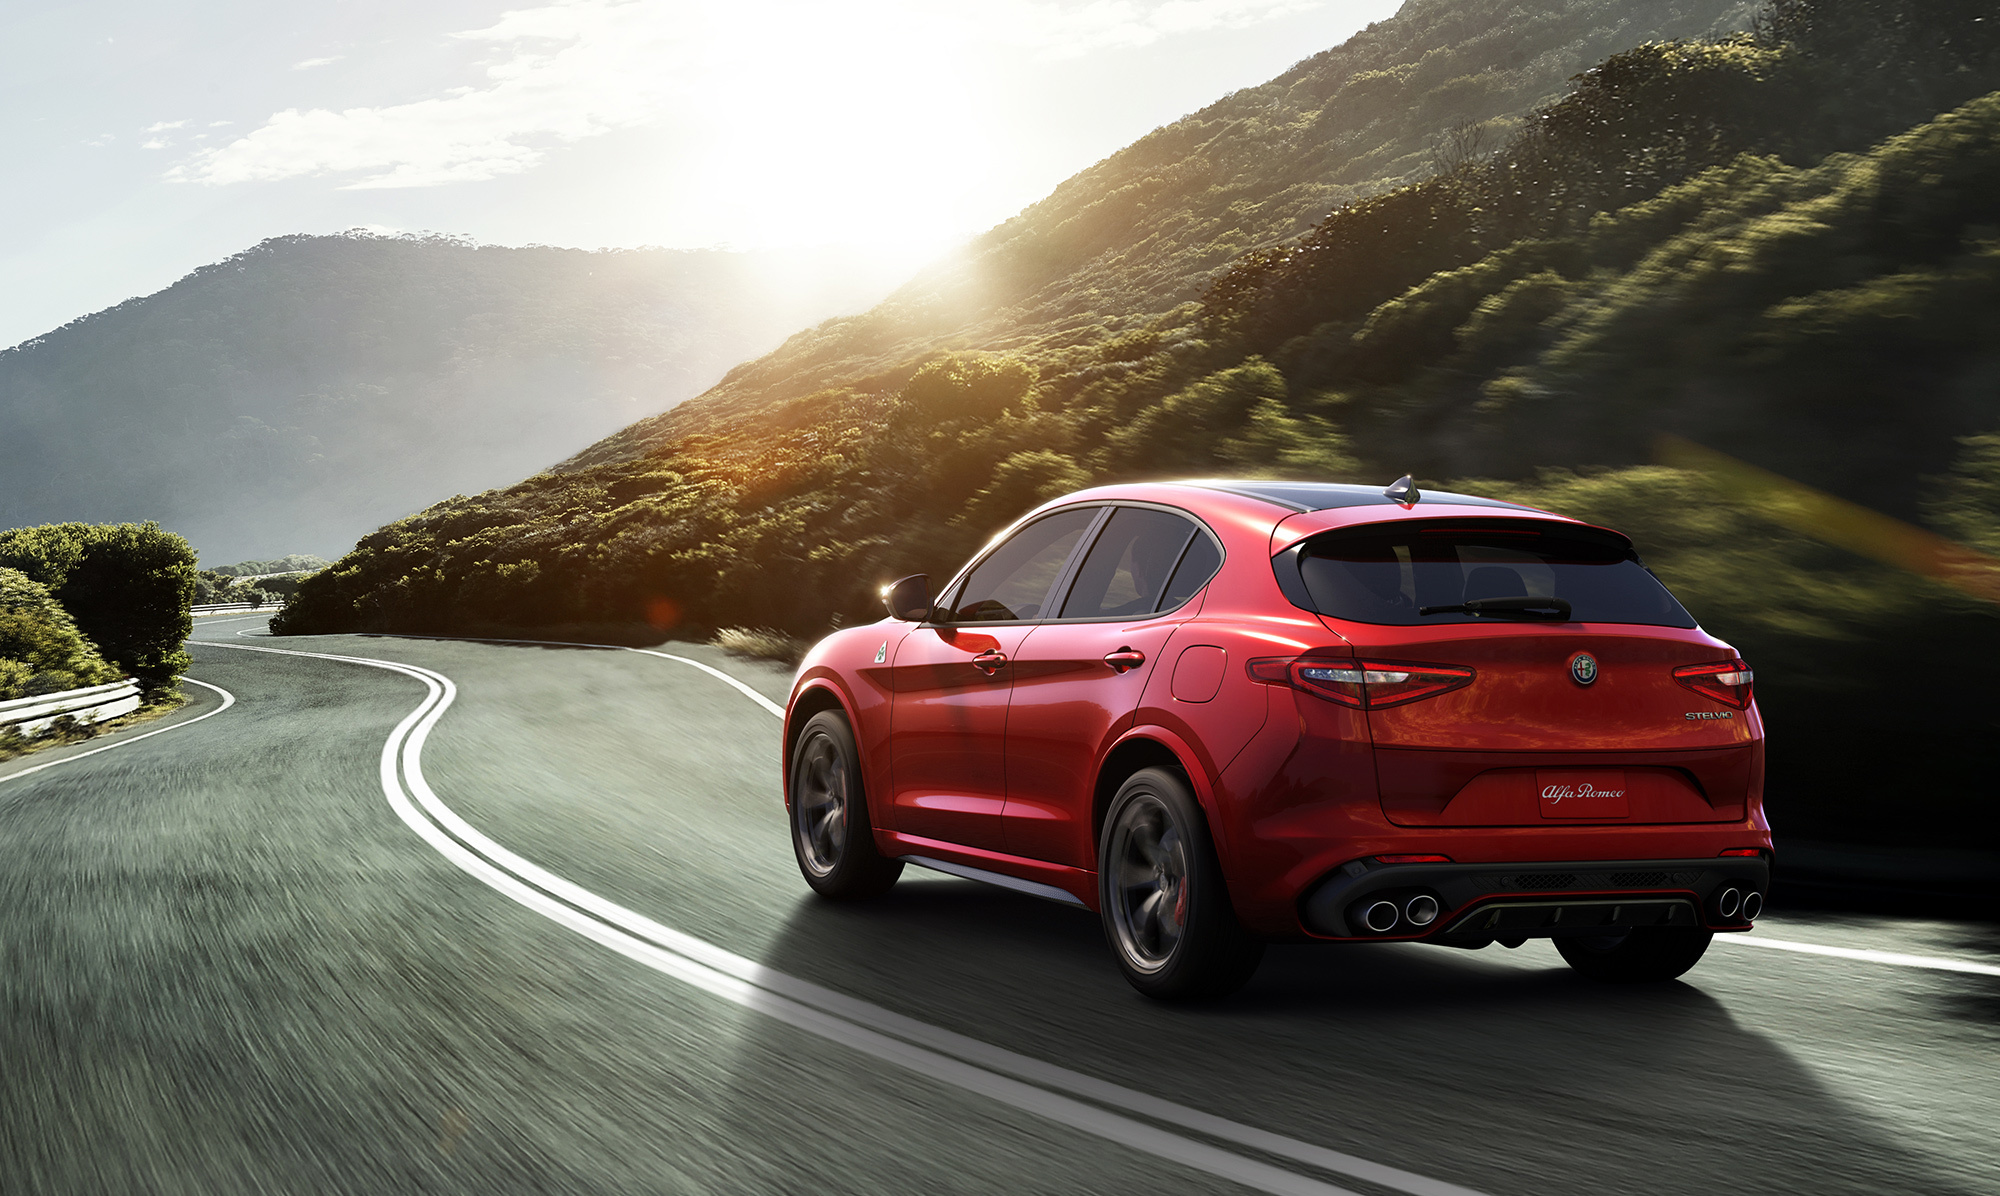 Alfa Romeo Stelvio Wallpapers Images Photos Pictures Backgrounds 2000x1196